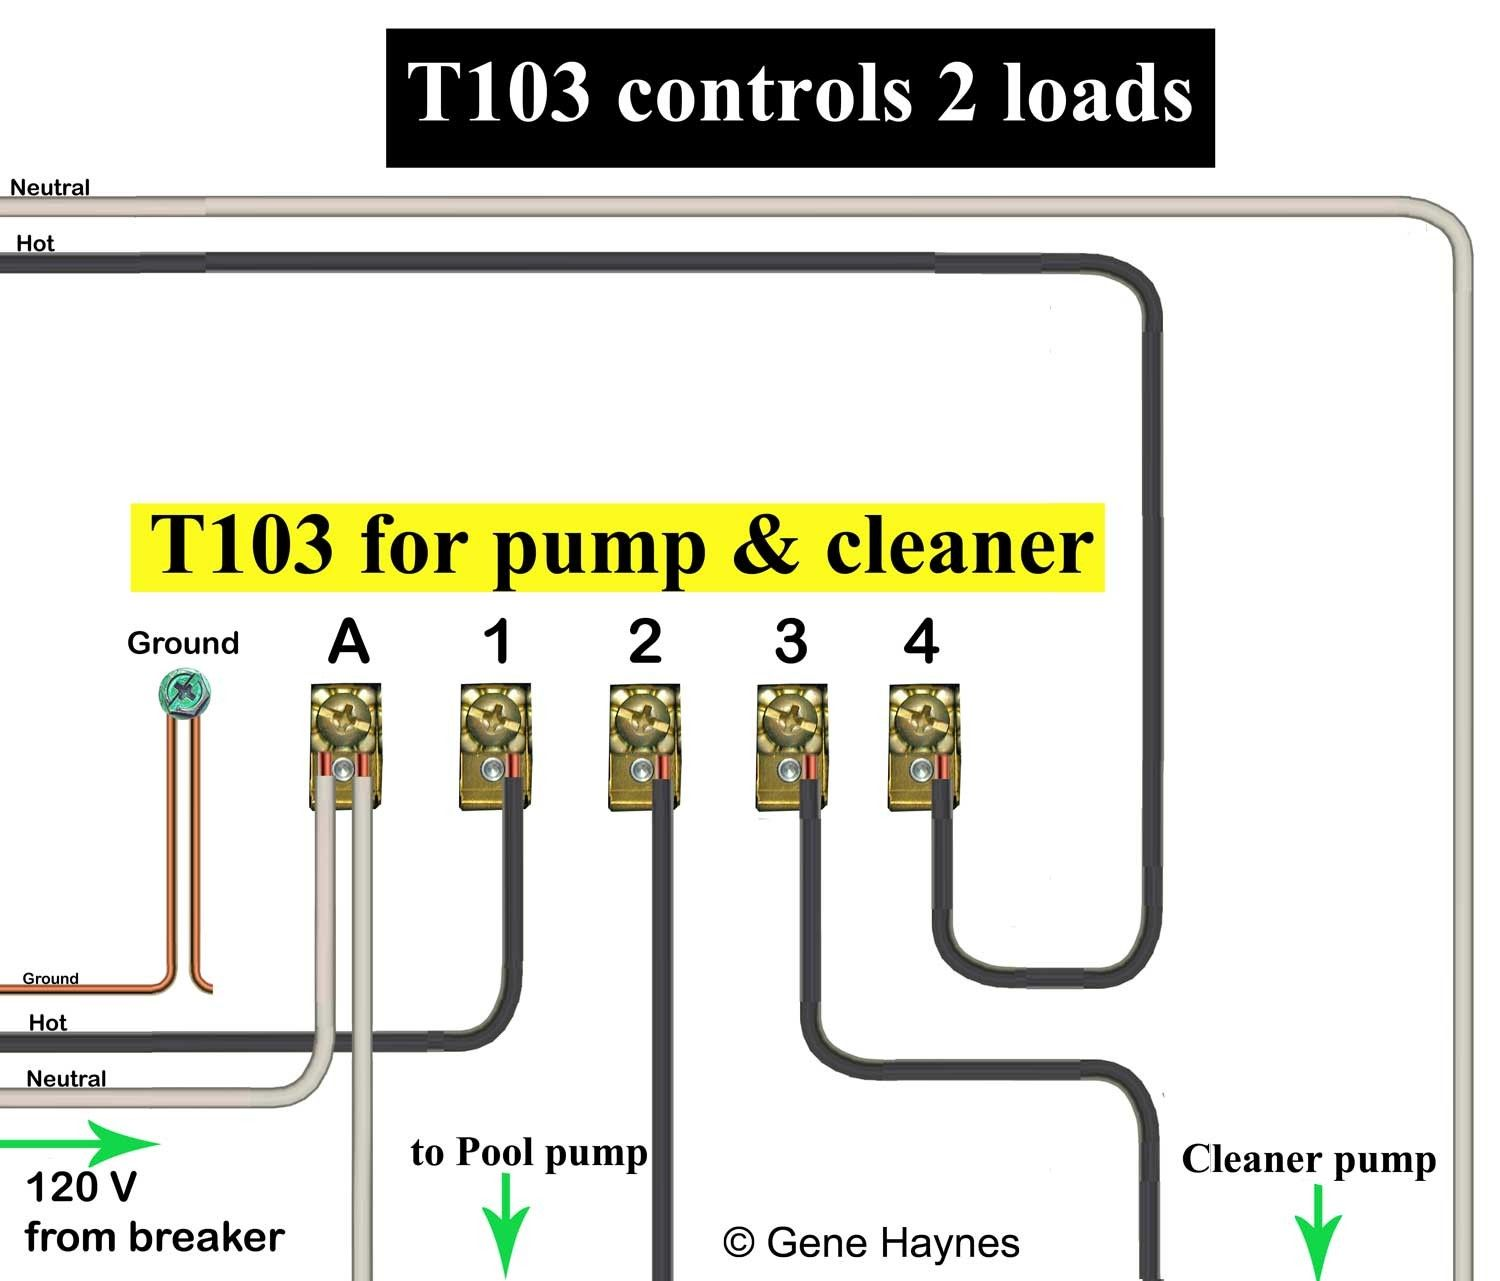 Best Of Swimming Pool Timer Wiring Diagram in 2020 | Pool pump, Pool,  Swimming pools | Pool Pump Wiring Diagram |  | Pinterest